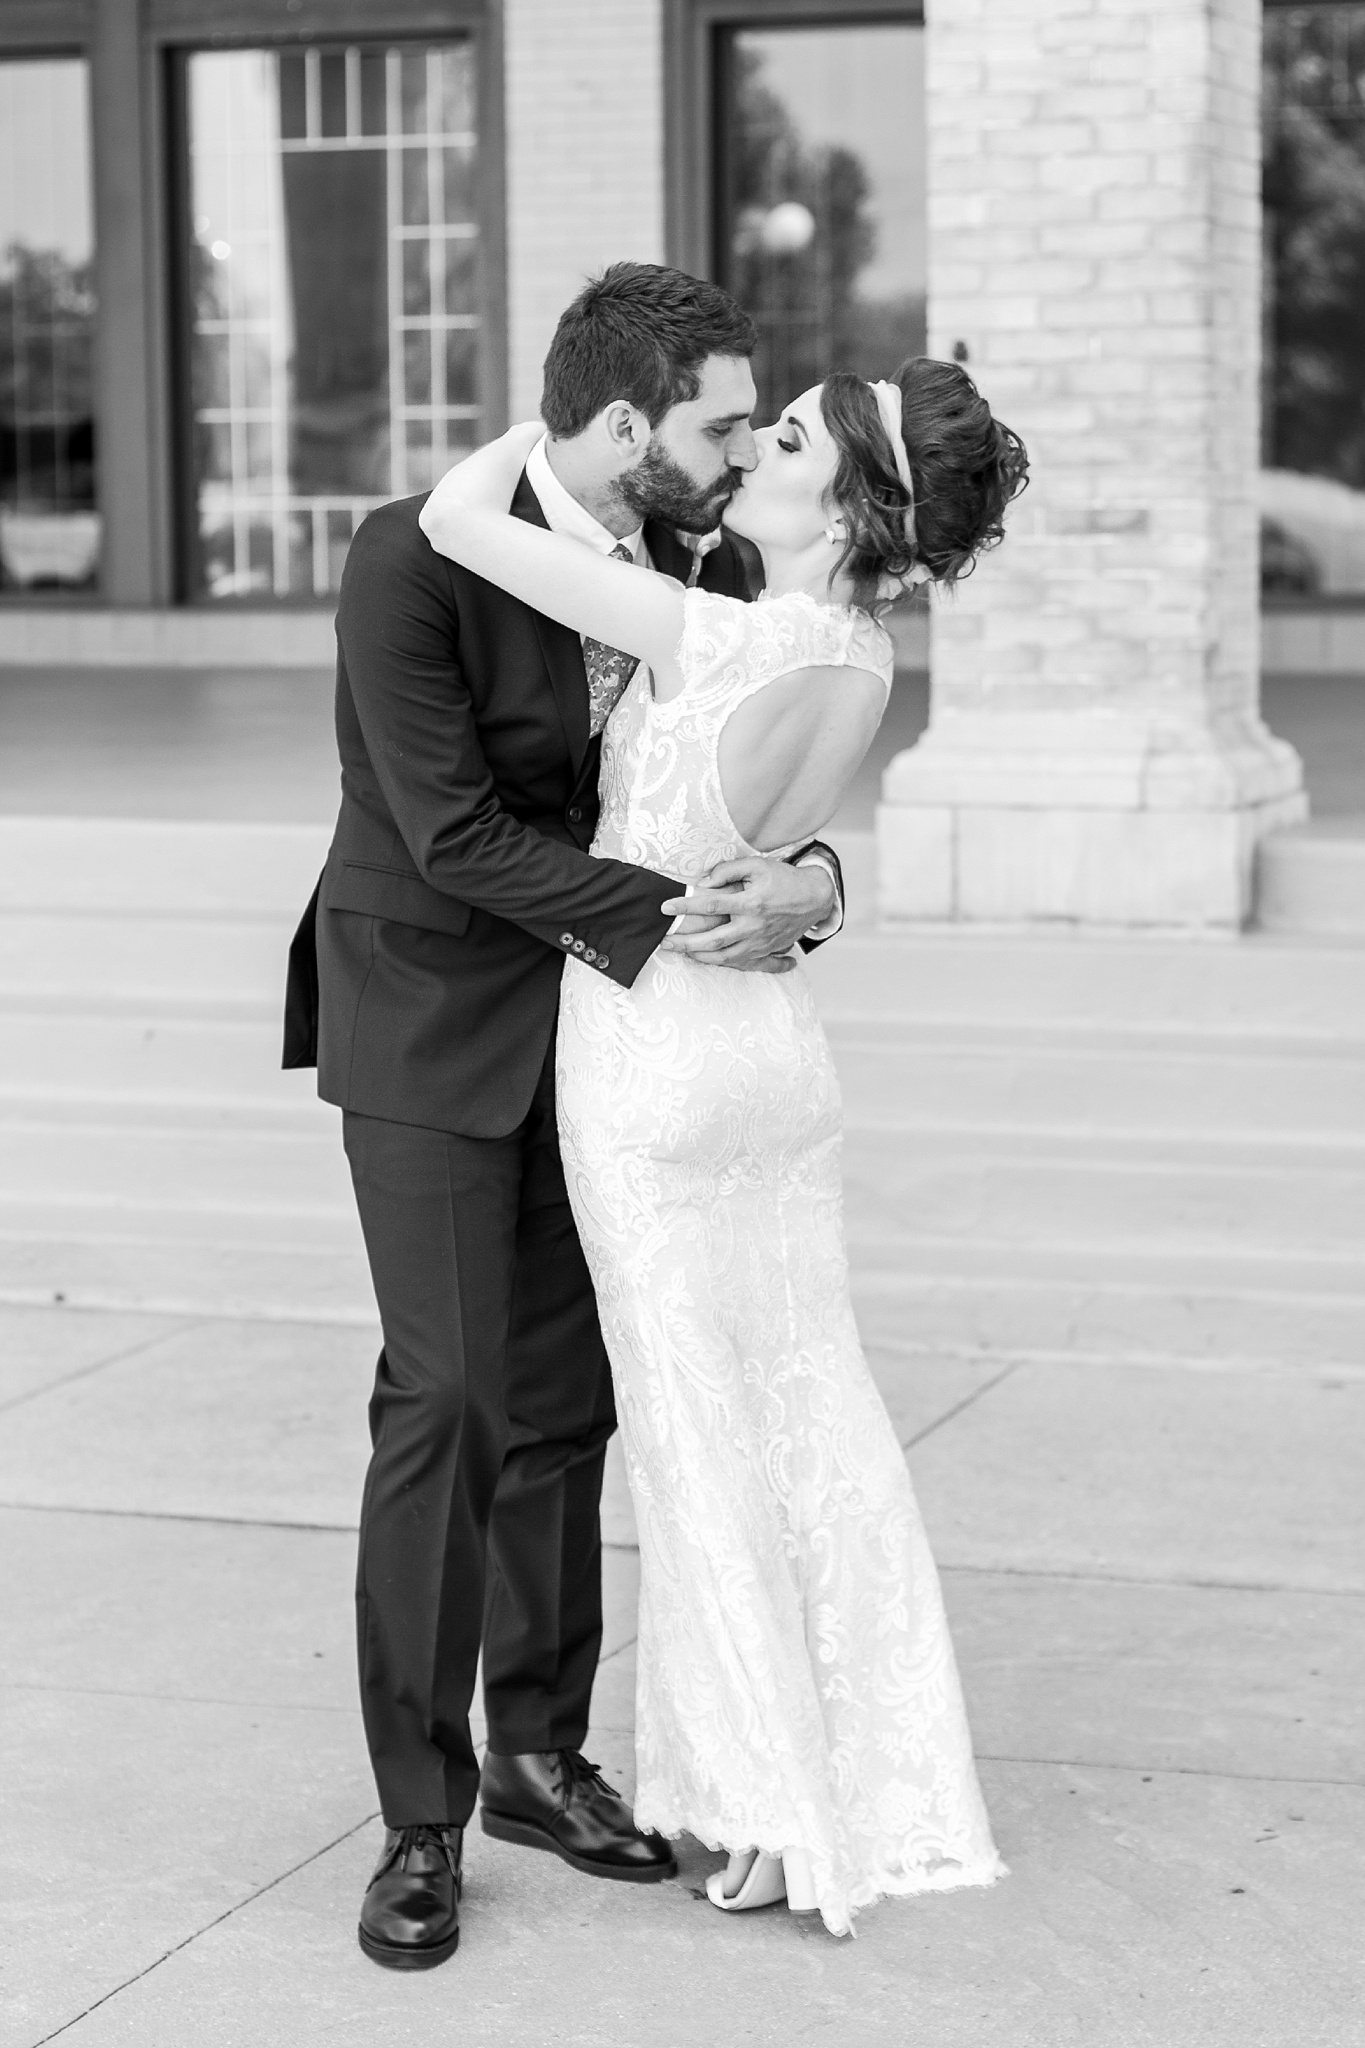 alternative-joyful-wedding-photos-at-the-belle-isle-casino-in-detroit-michigan-by-courtney-carolyn-photography_0028.jpg